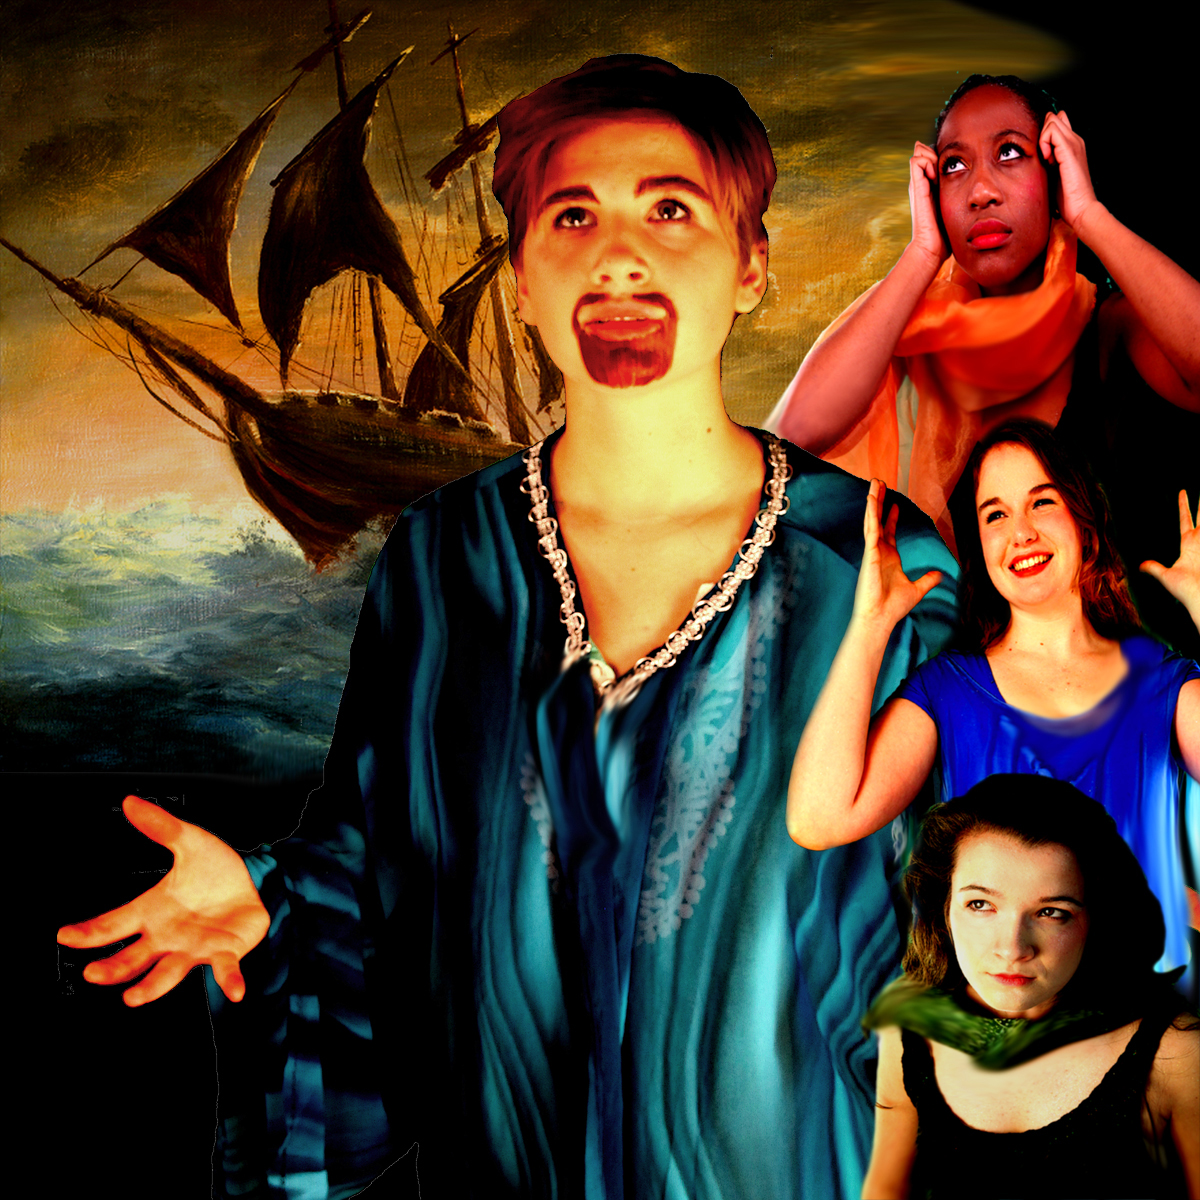 Rozara Sanders as Prospero, Gloria Ihenetu, Hannah Thien, and Hunter Frederick as Ariels